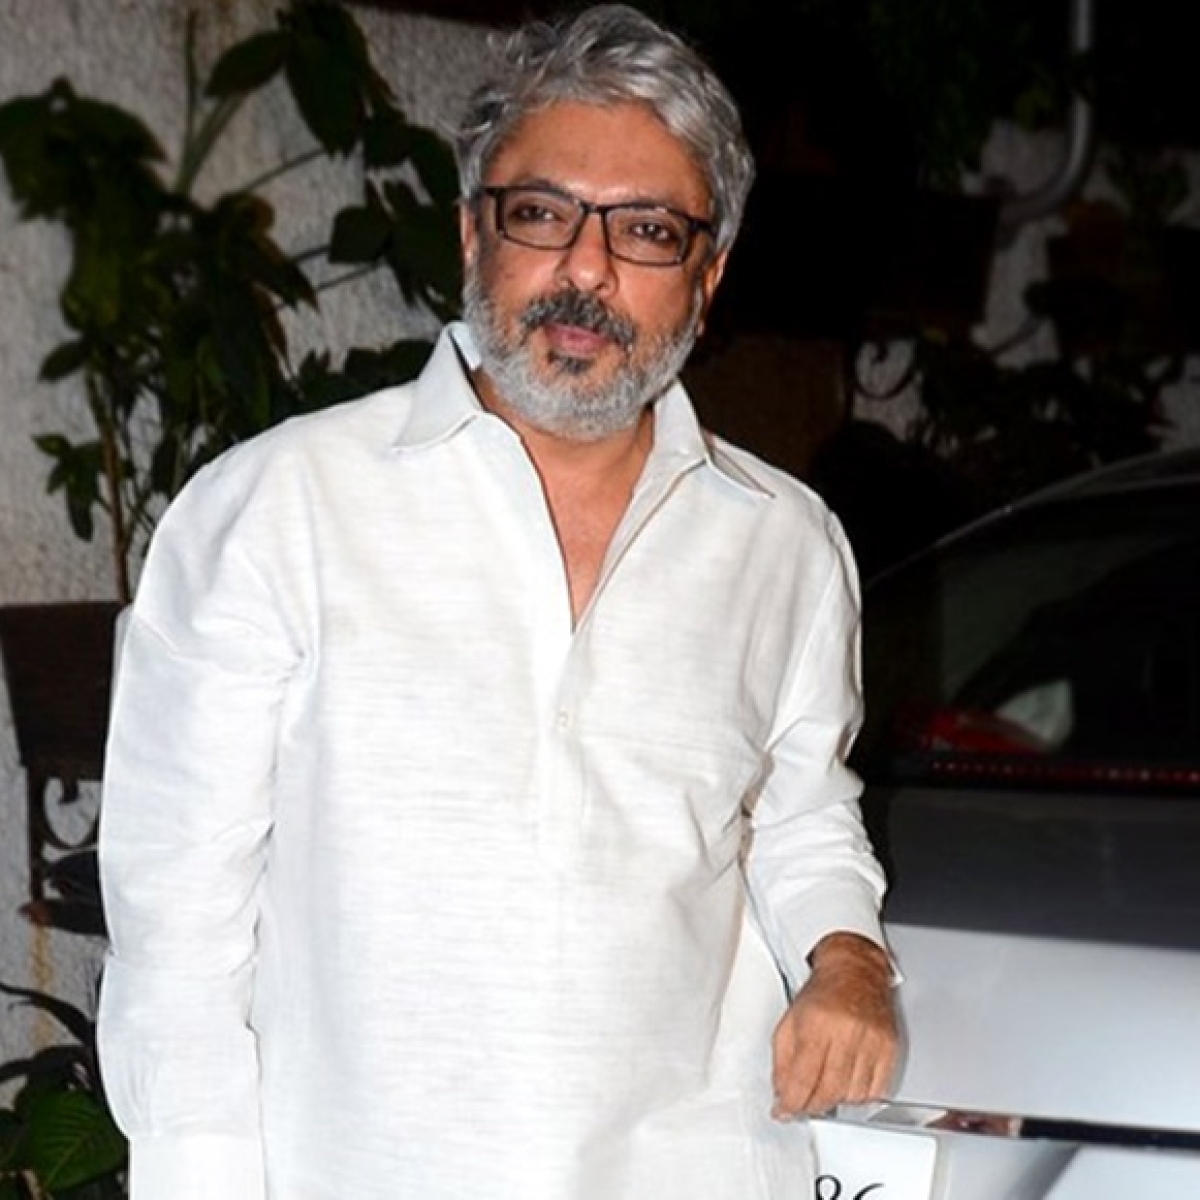 Sanjay Leela Bhansali to be summoned by Mumbai Police in Sushant Singh Rajput's suicide case